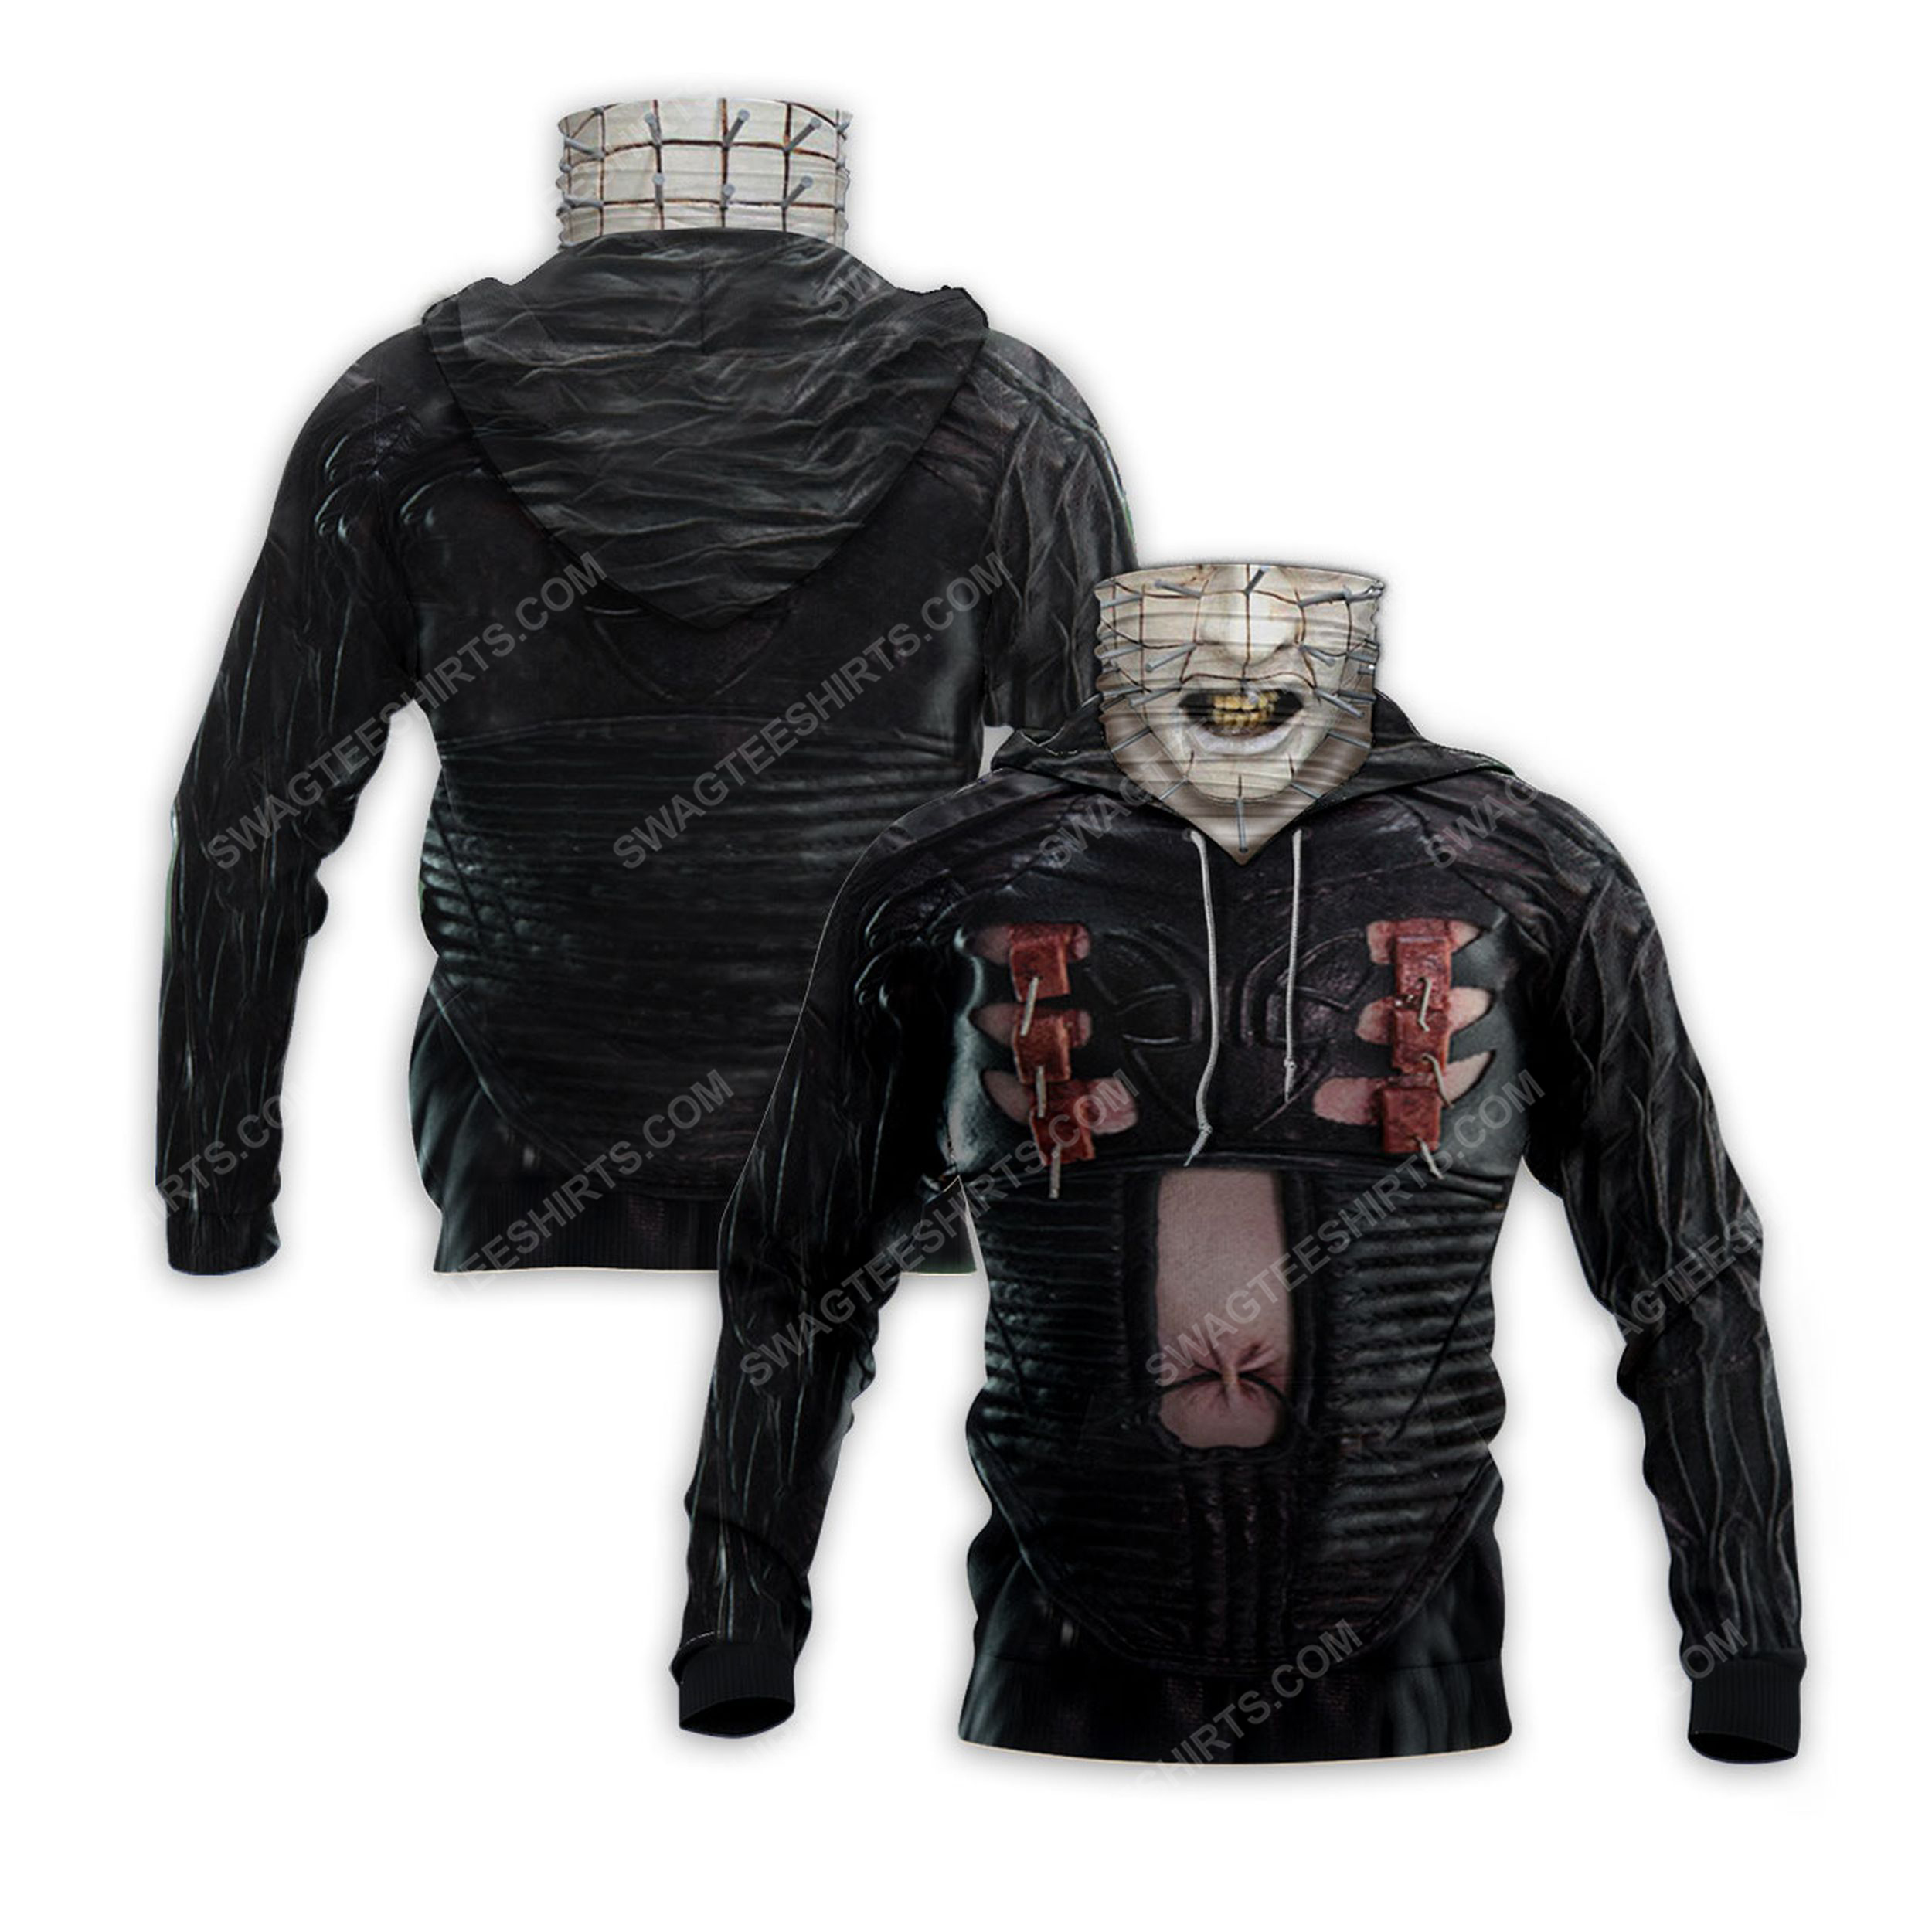 Pinhead the hell priest for halloween full print mask hoodie 2(1) - Copy